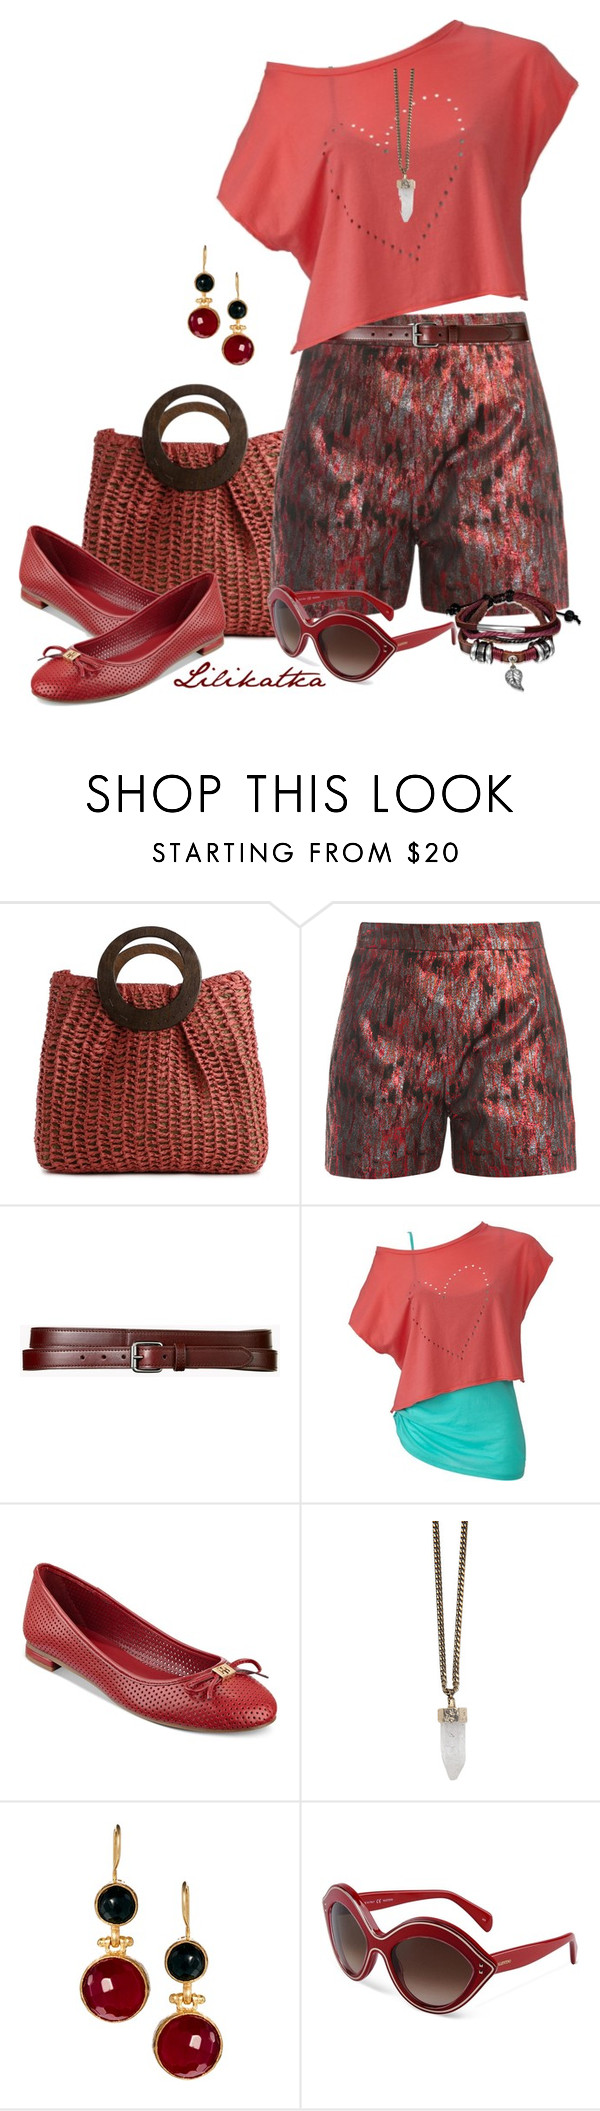 """""""Pivonka#1301"""" by lilikatka ❤ liked on Polyvore featuring Kelly & Katie, Markus Lupfer, Theory, Tommy Hilfiger, Givenchy, Ottoman Hands and Valentino"""